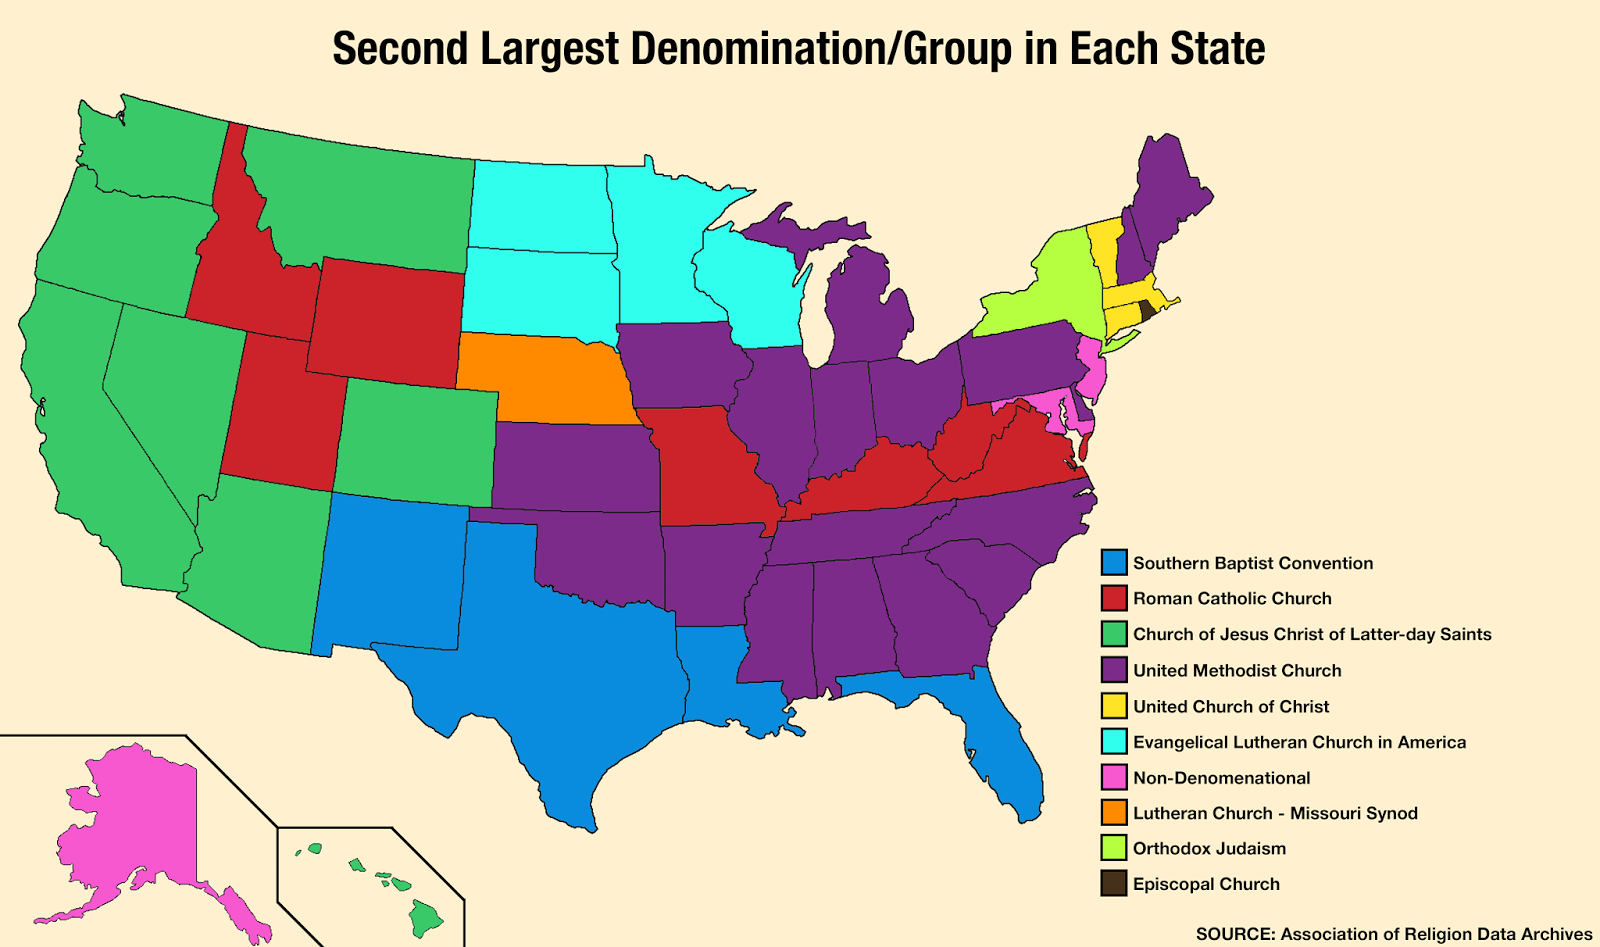 Second largest denomination/group in each state